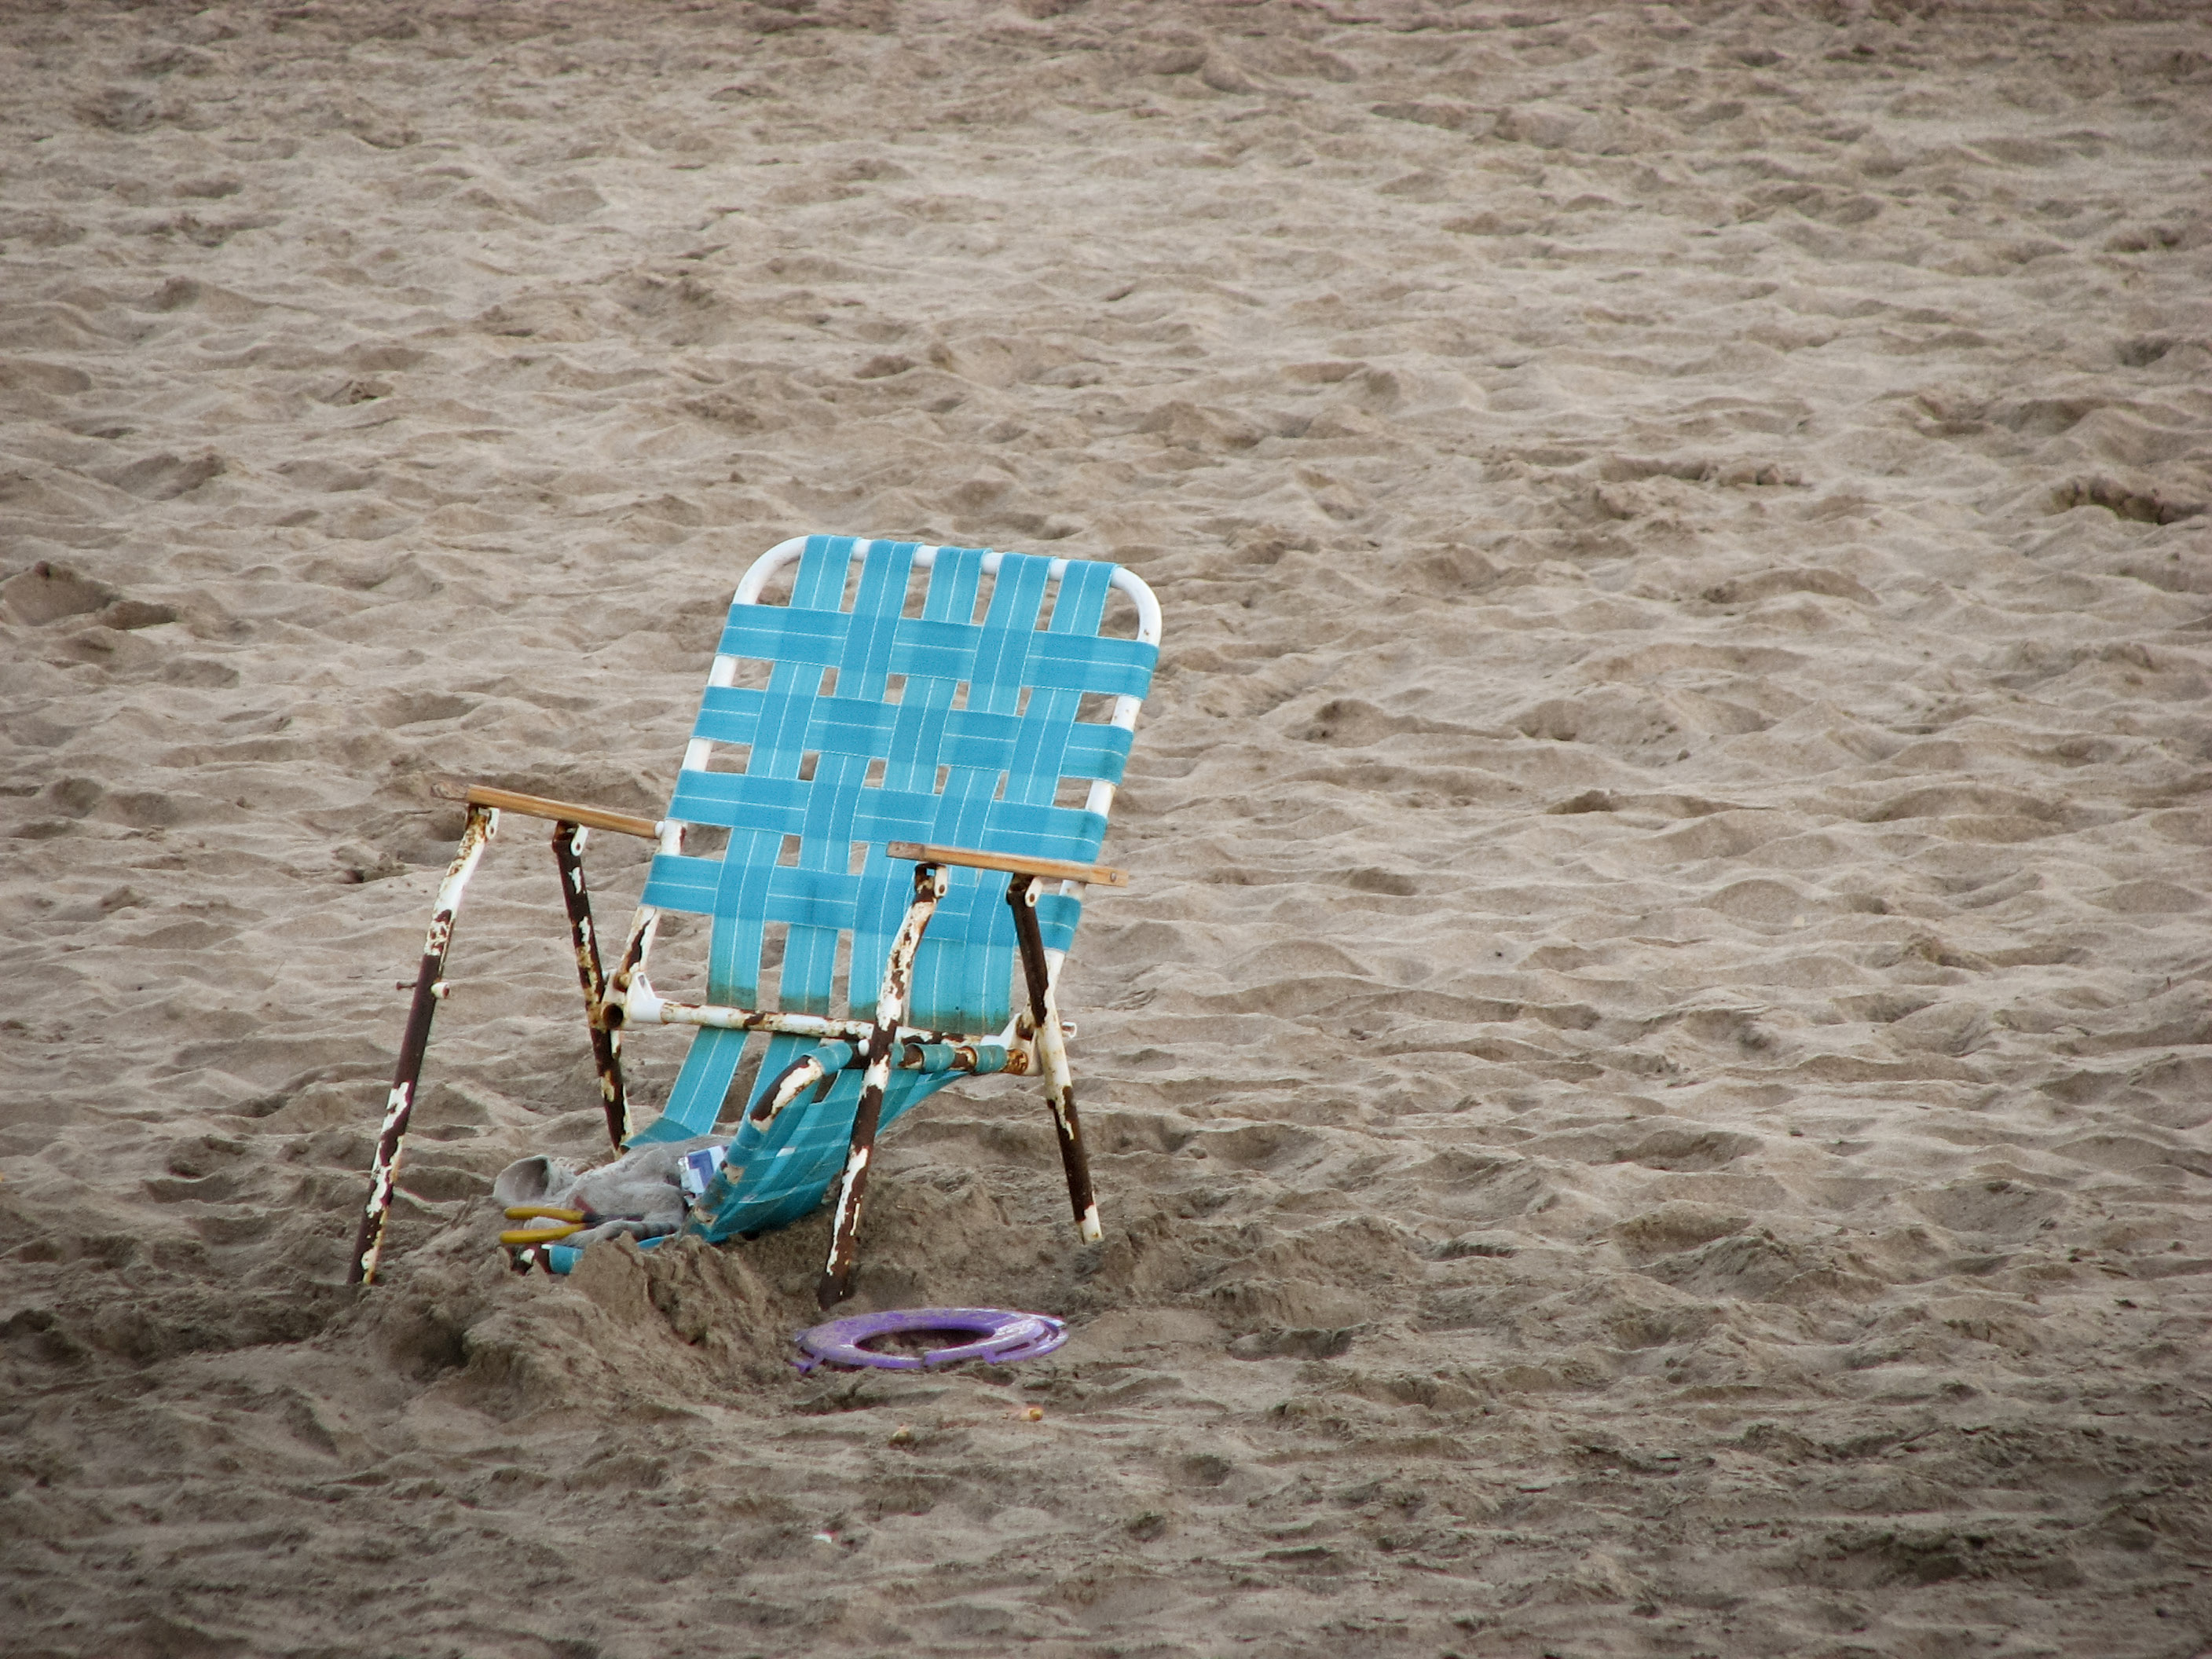 free photo old beach chair rust rusty sand free download jooinn